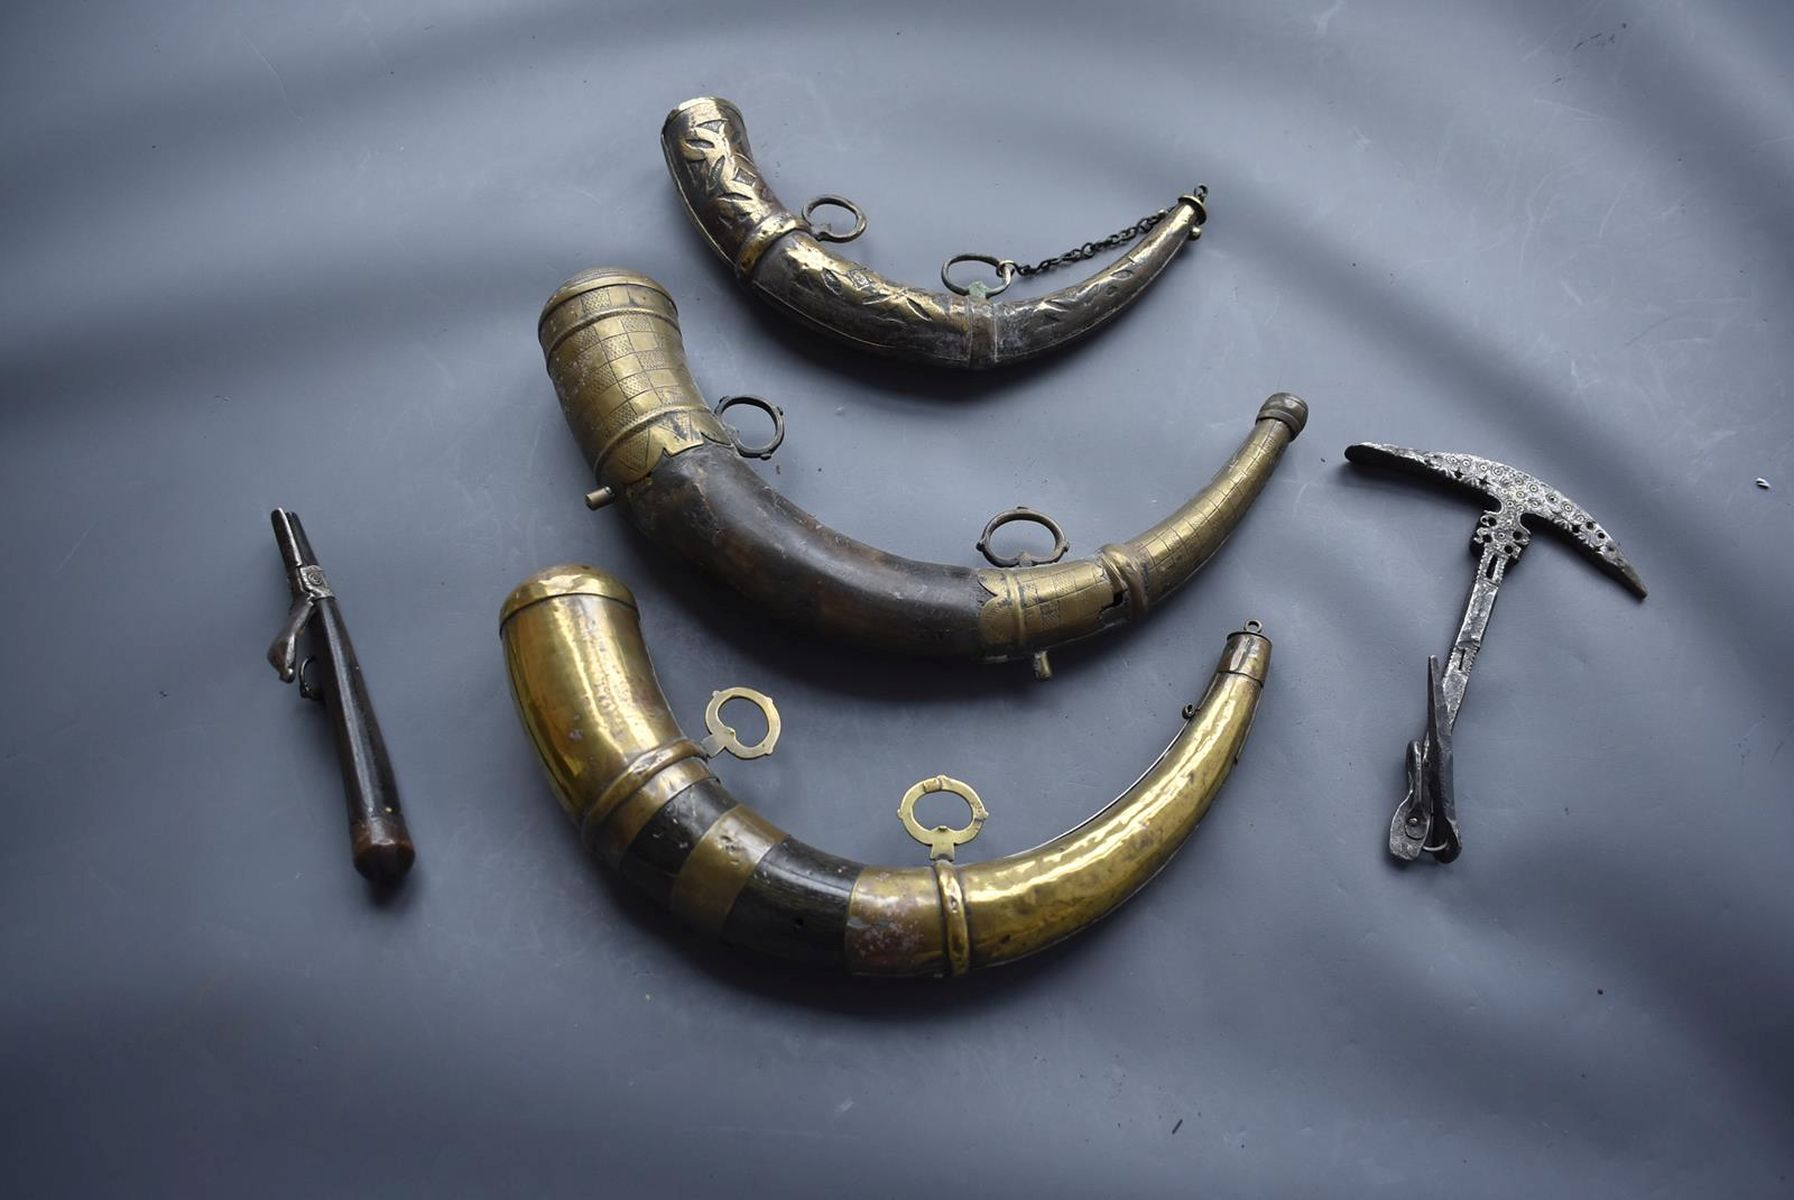 THREE VARIOUS NORTH AFRICAN POWDER HORNS, each of natural curving form with ornate brass mounts, - Image 11 of 11